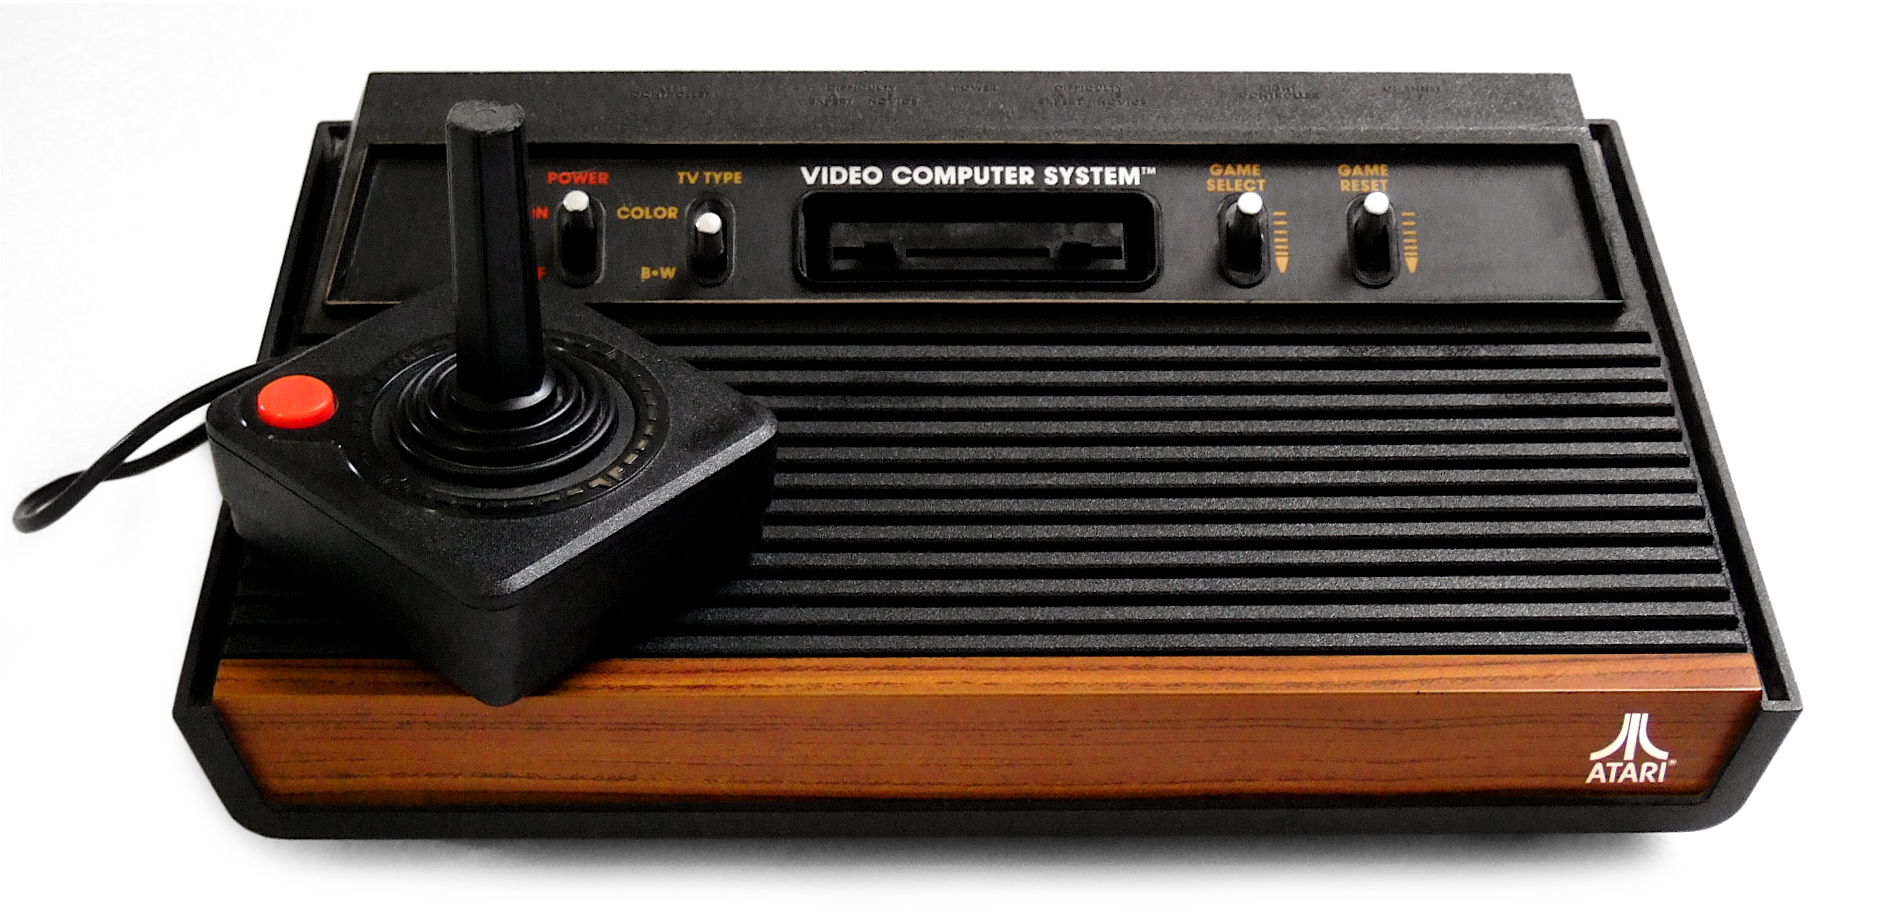 The Atari 2600. I still remember blowing on the game cartridges before jamming them in.